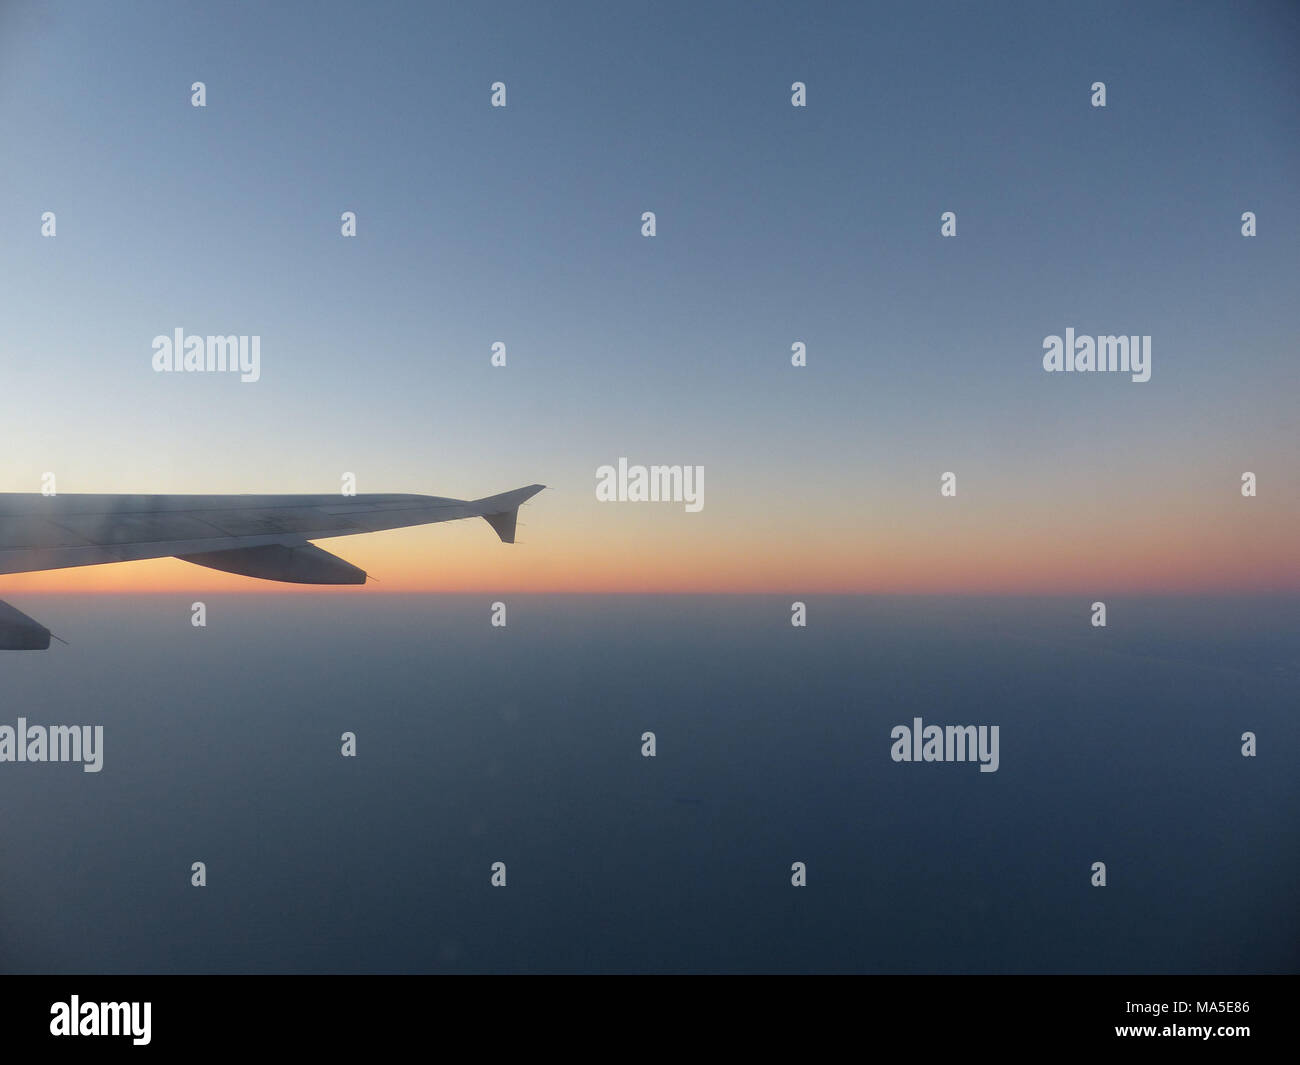 Wing of A 380 Airbus with sky illuminated by rising sun - Stock Image